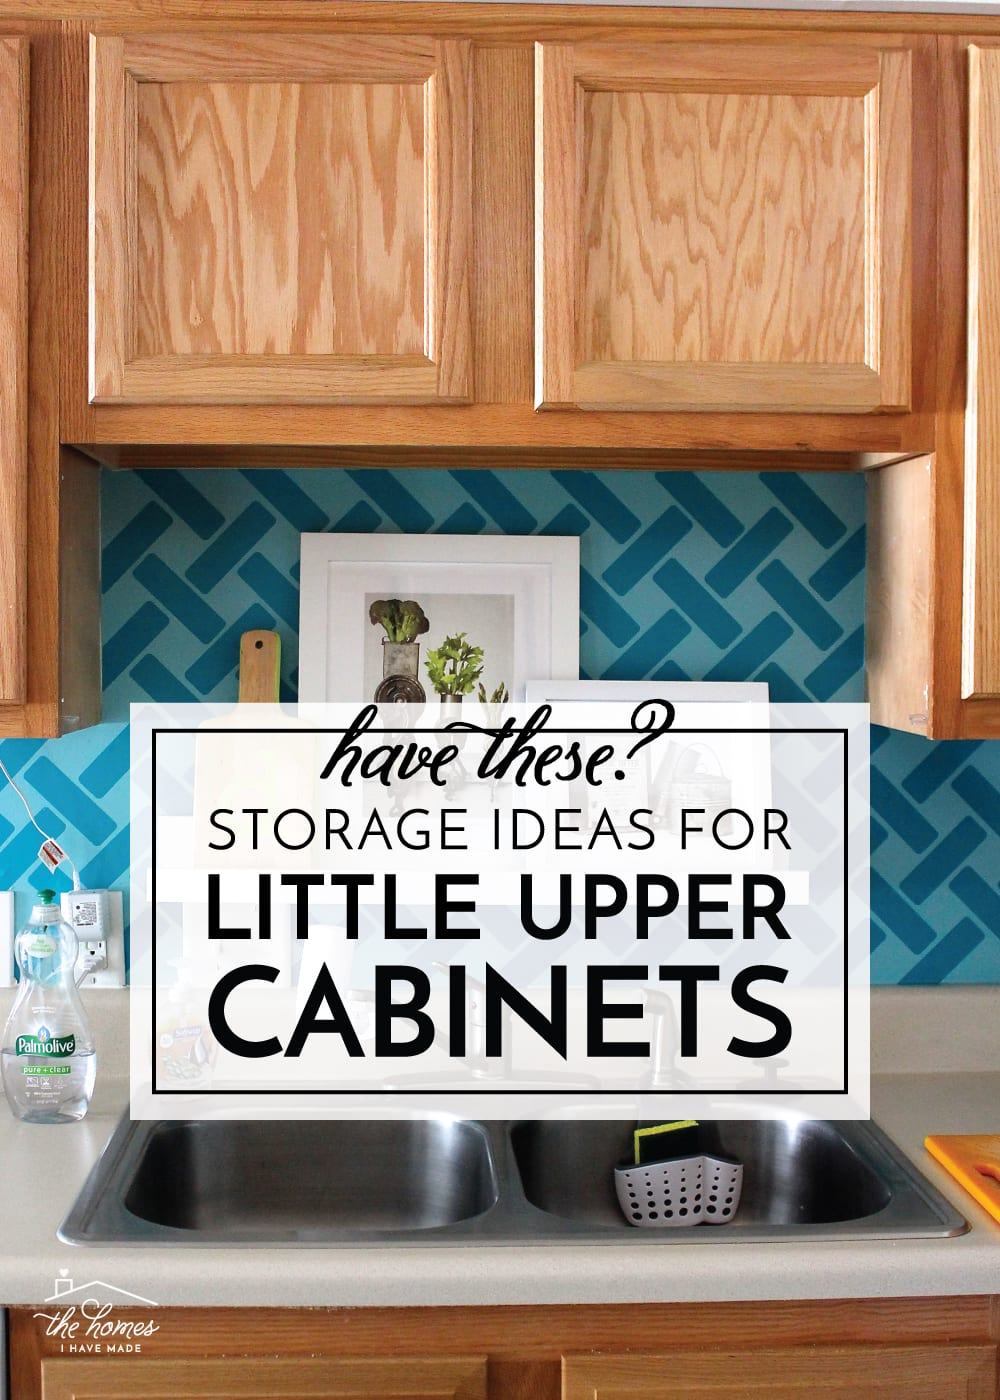 storage ideas for little upper cabinets